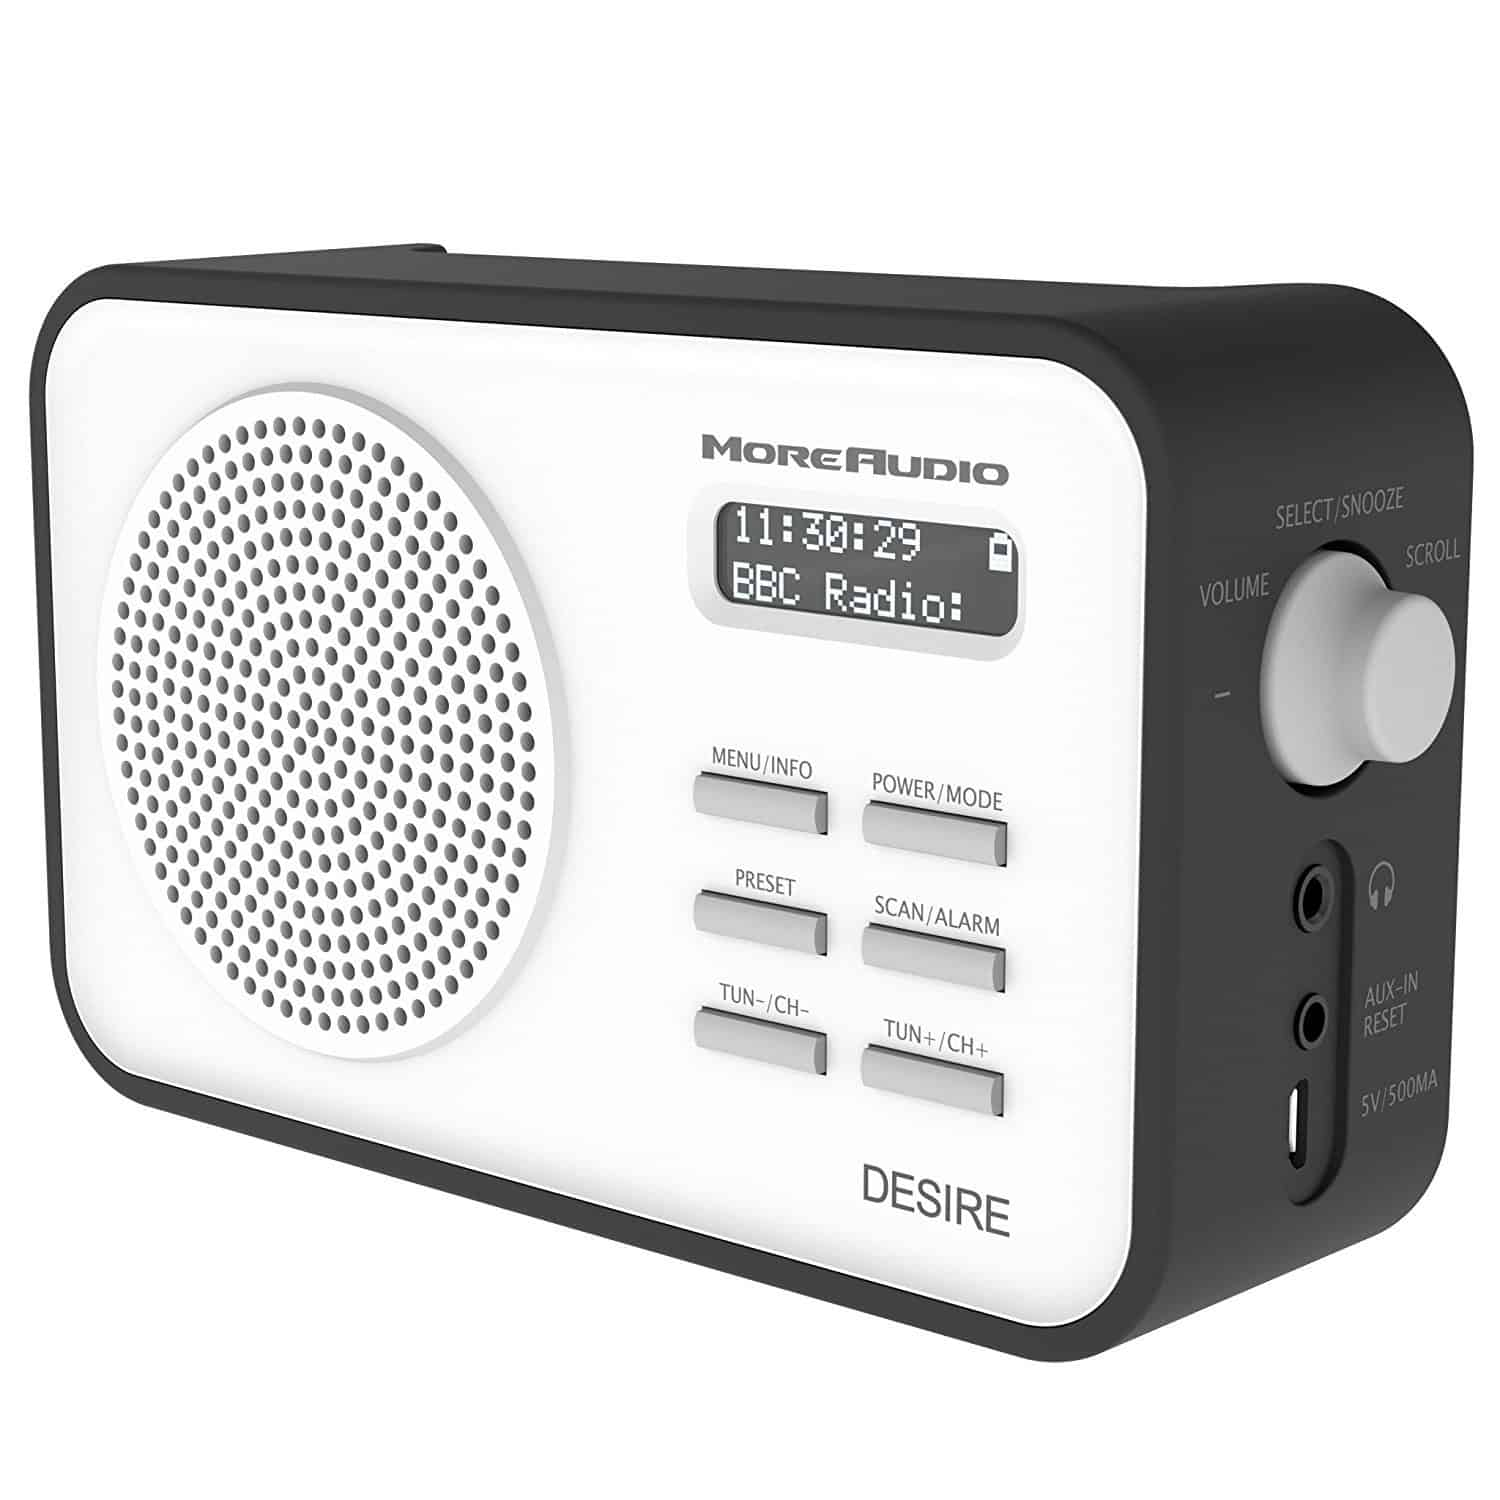 Portable Rechargeable DAB Radio – More Audio